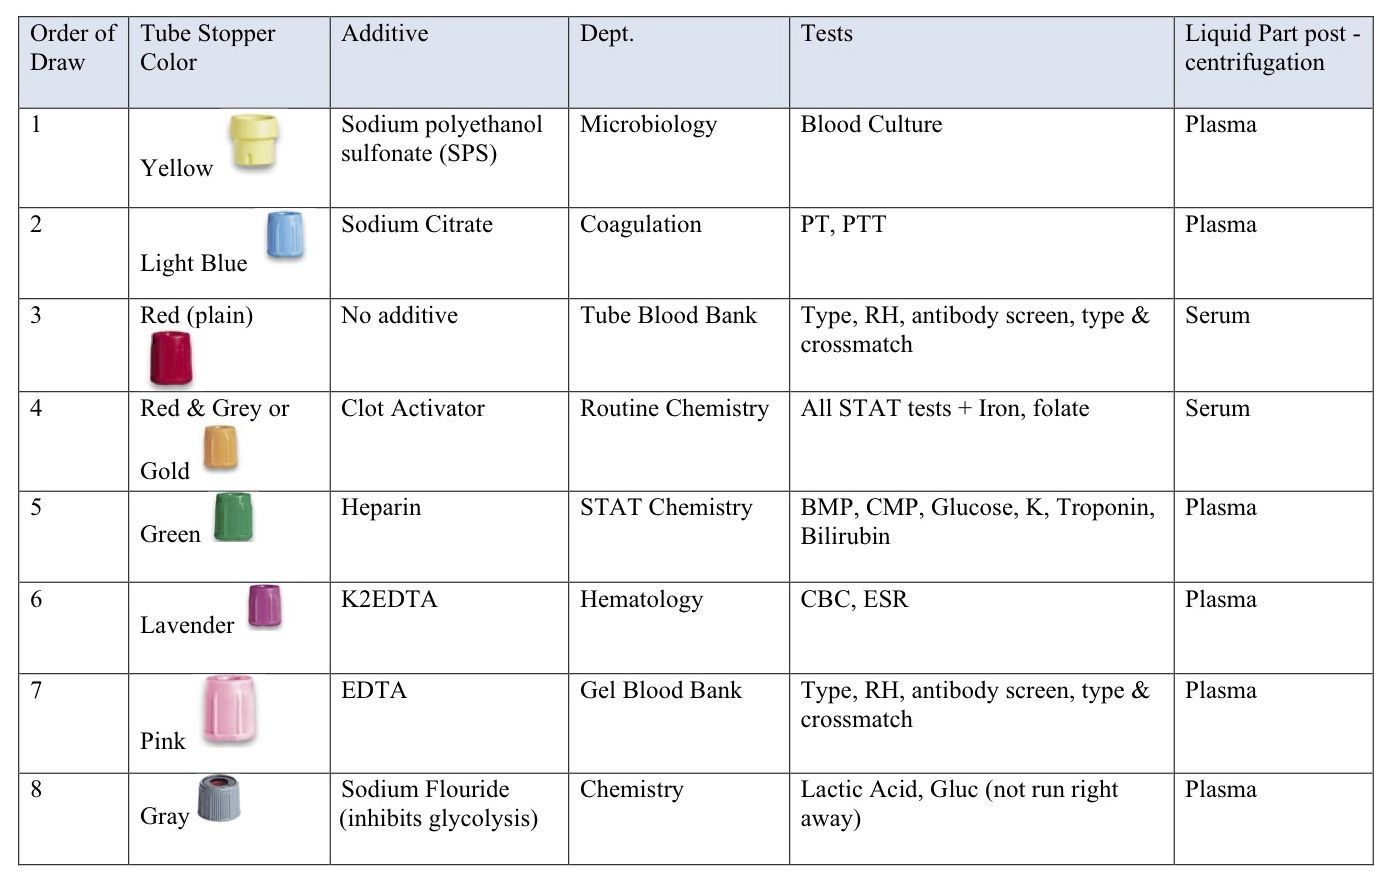 Phlebotomy Tubes And Tests Chart